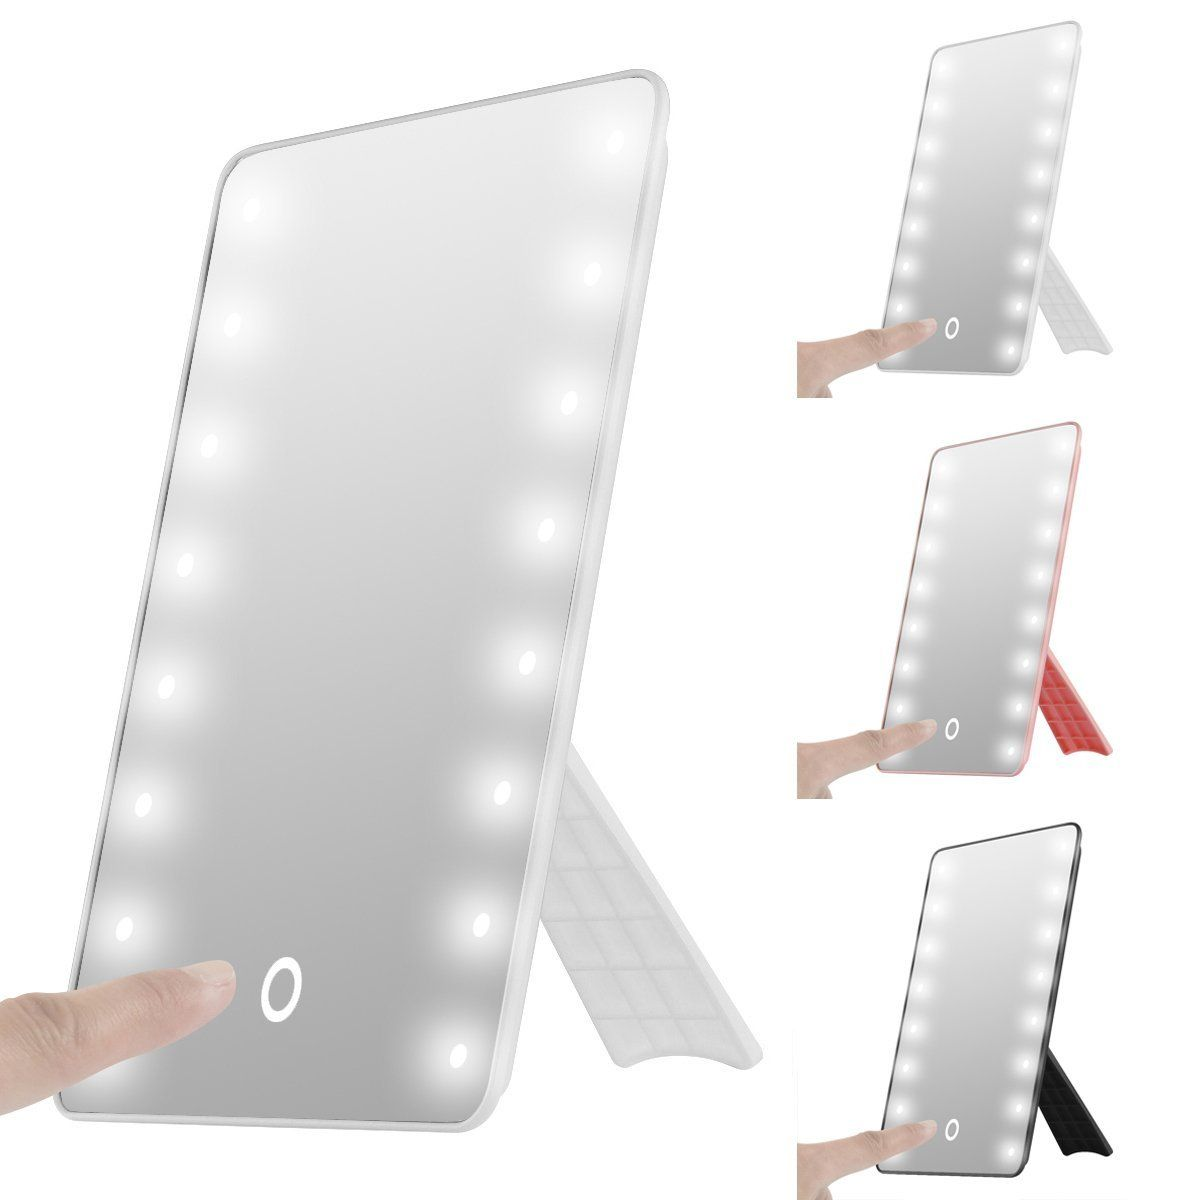 Foldable LED Lighted Vanity Mirror With Light, Oenbopo Smart Touch  Kickstand Lighted Vanity Mirror Makeup Cosmetic Countertop Cordless Table  Mirror ...